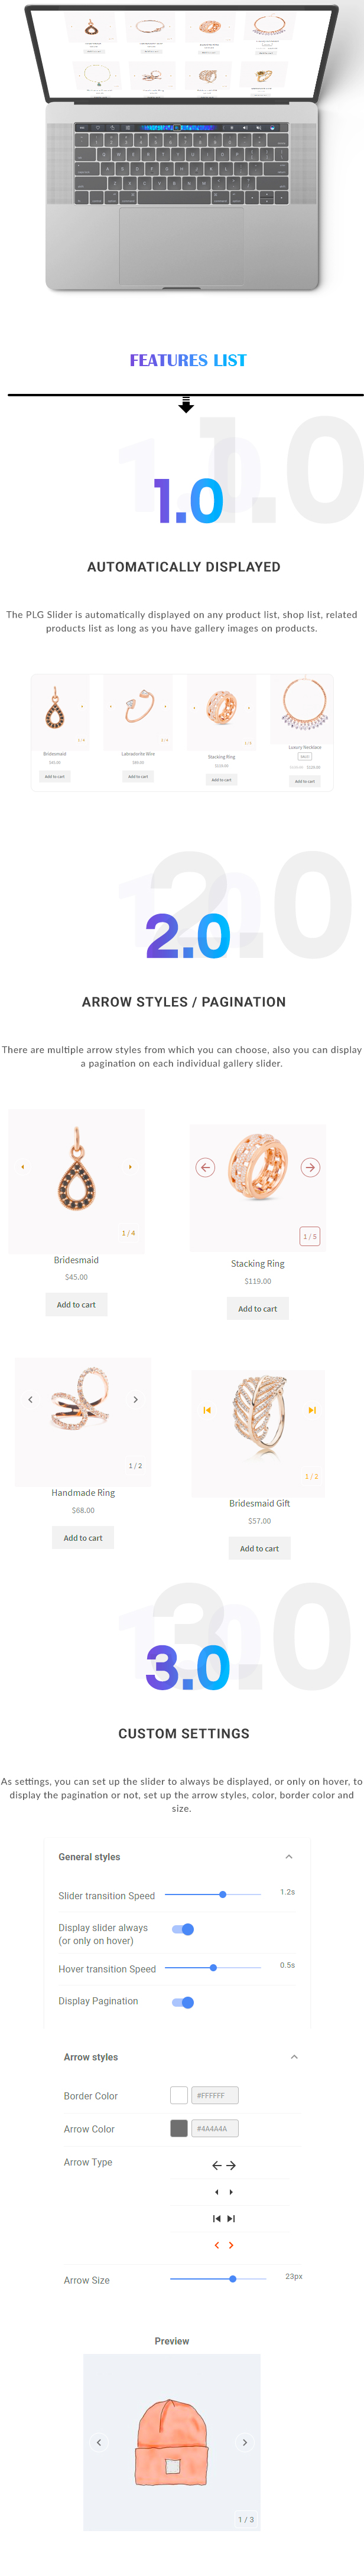 PLG - Products List Gallery Slider for WooCommerce - 1 PLG - Products List Gallery Slider for WooCommerce - plgslider - PLG – Products List Gallery Slider for WooCommerce